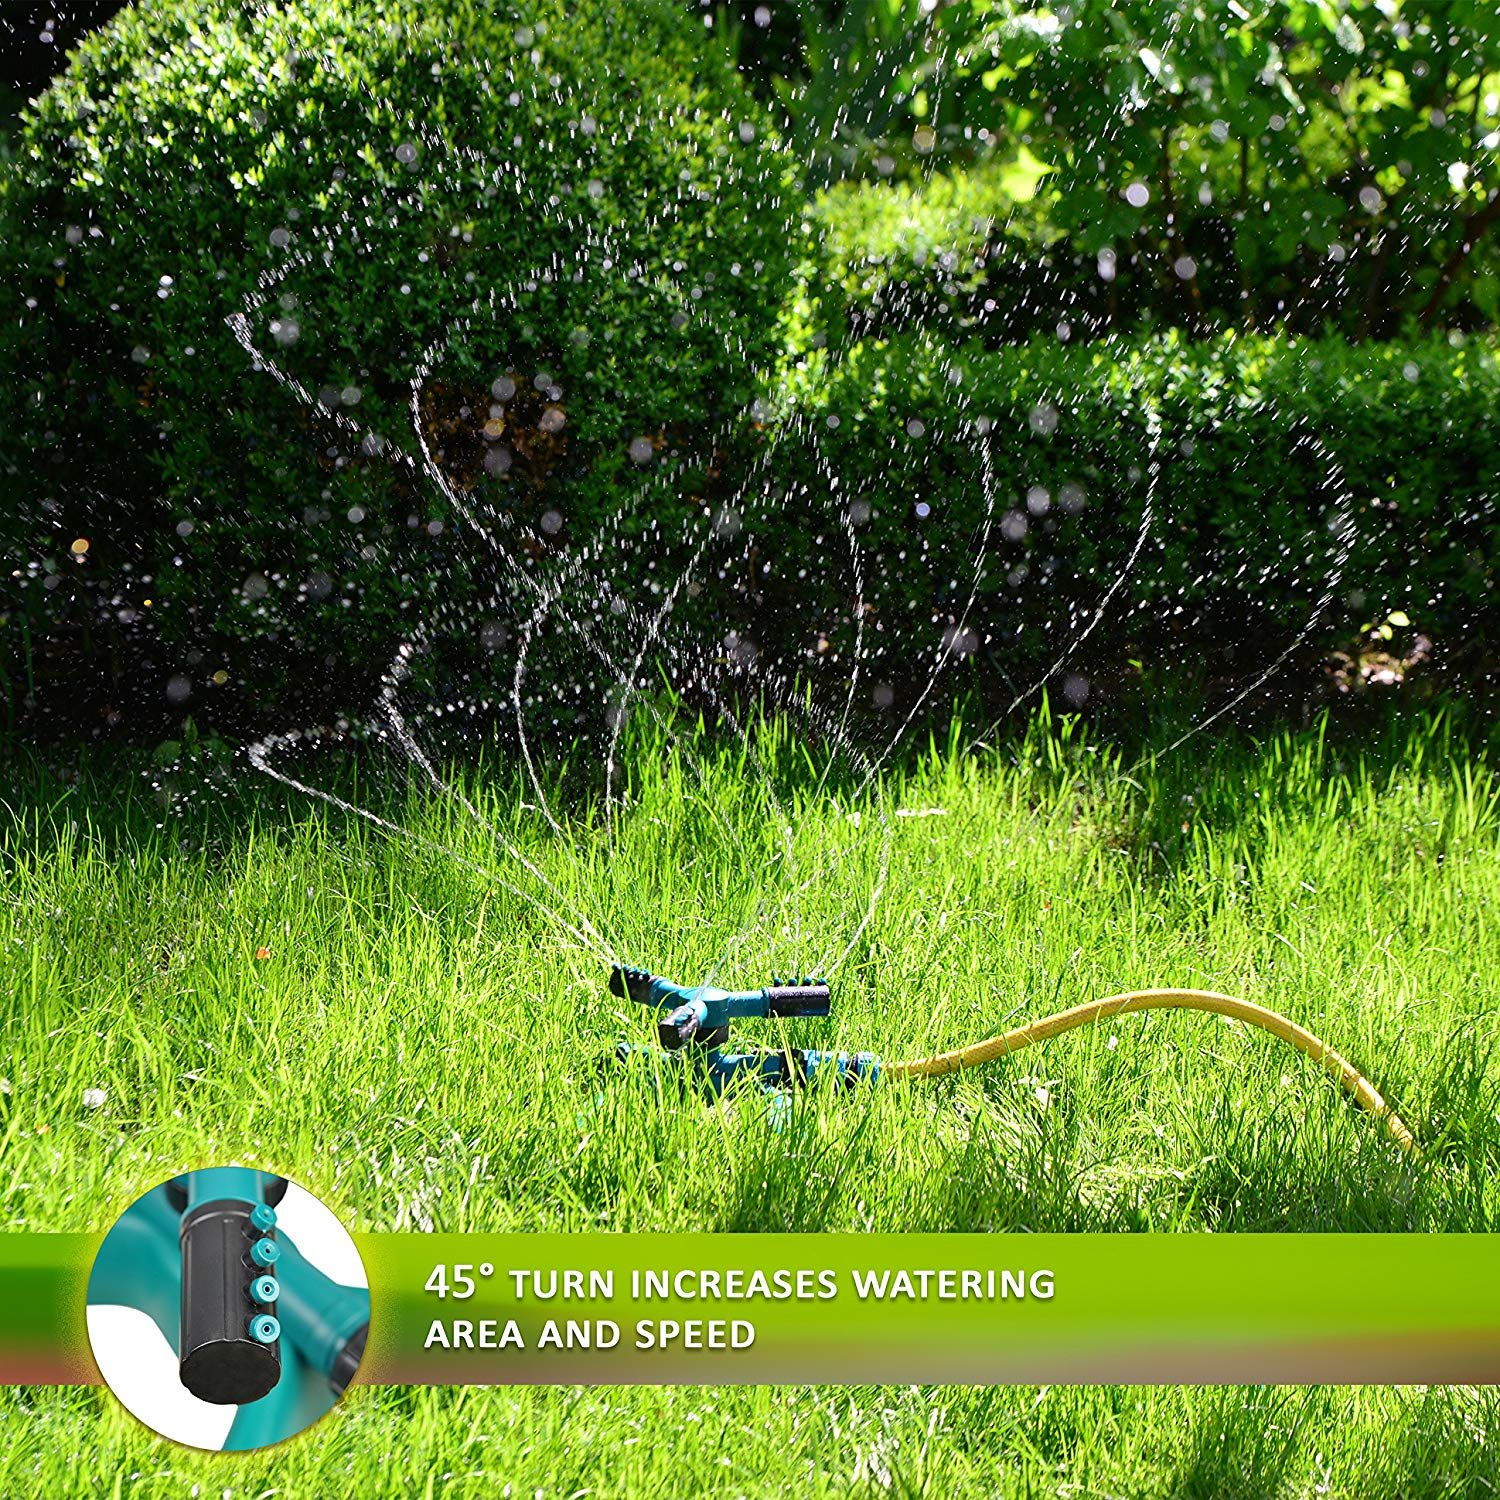 Water Sprinkler System - Lawn Garden Sprinkler Head - Outdoor Automatic Sprinklers for Lawn Irrigation System Kids - Three Arm High Impact Sprinkler System - Up To 3600 Square Feet Coverage by My garden (Image #6)